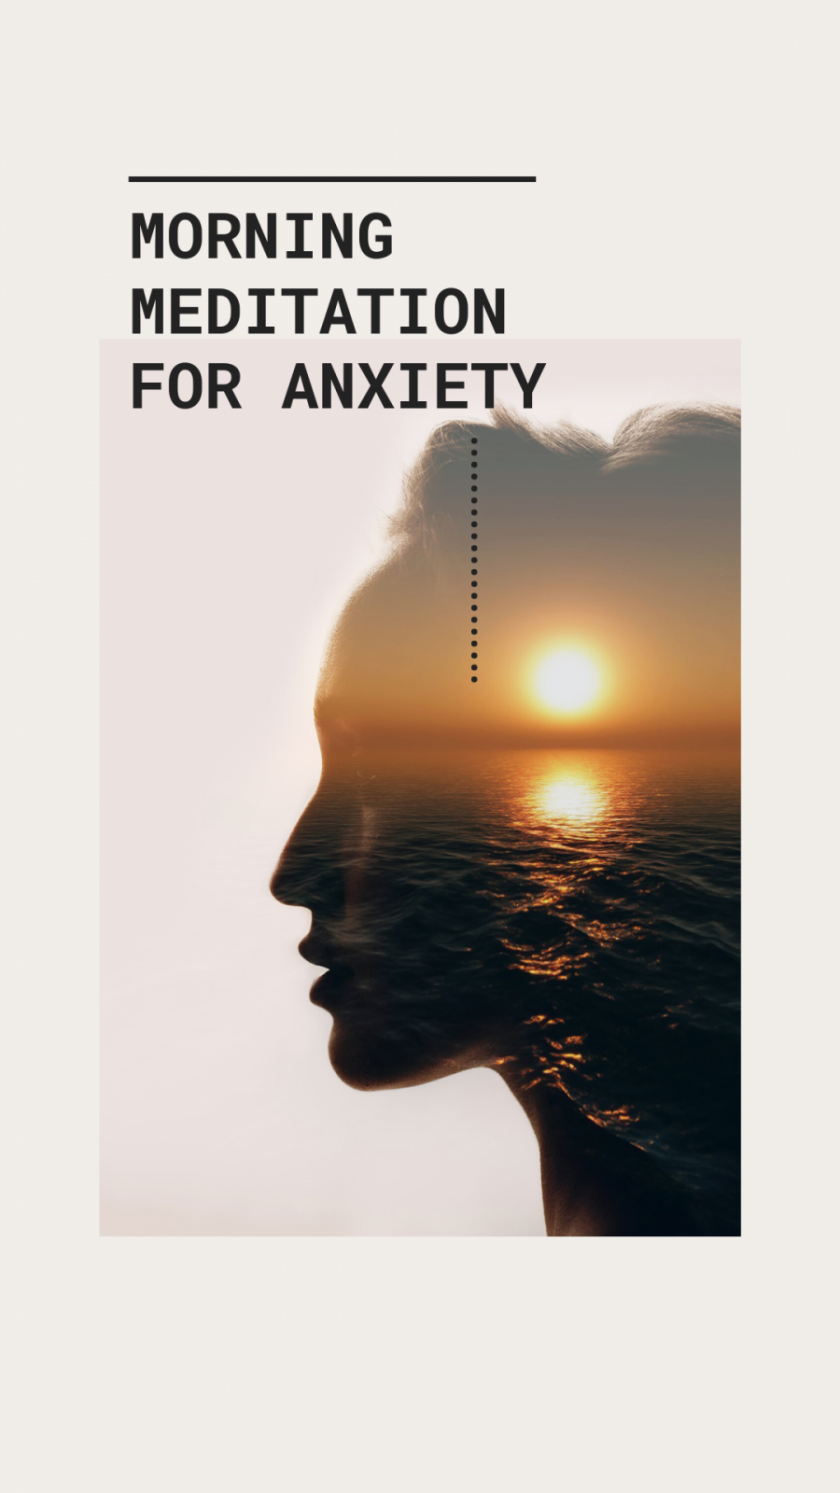 short morning meditation for anxiety currently wearing video